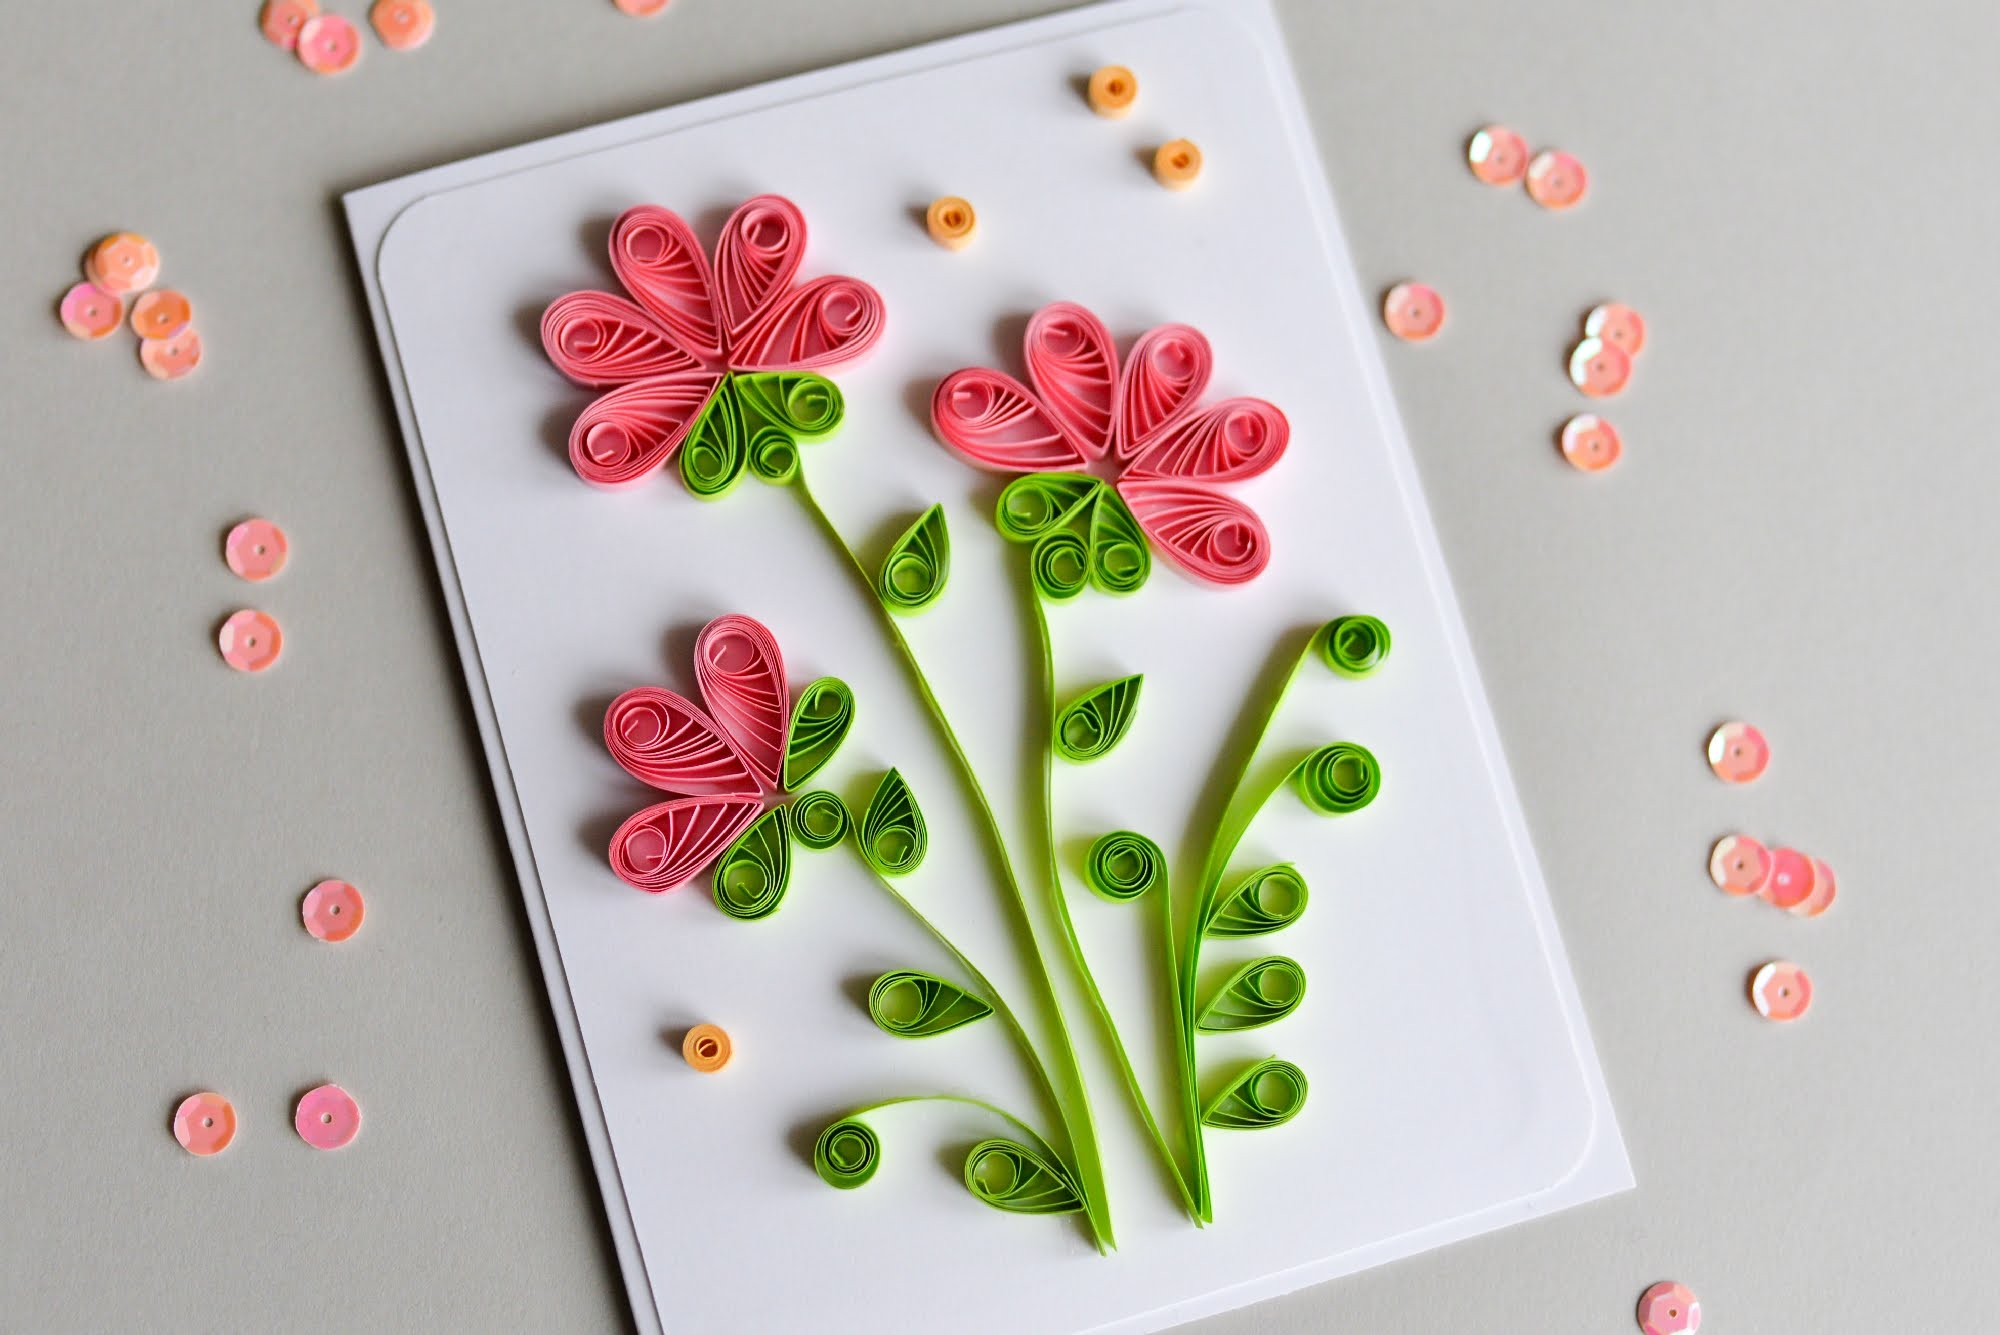 How to Make - Greeting Card Quilling Flowers - Step by Step | Kartka ...